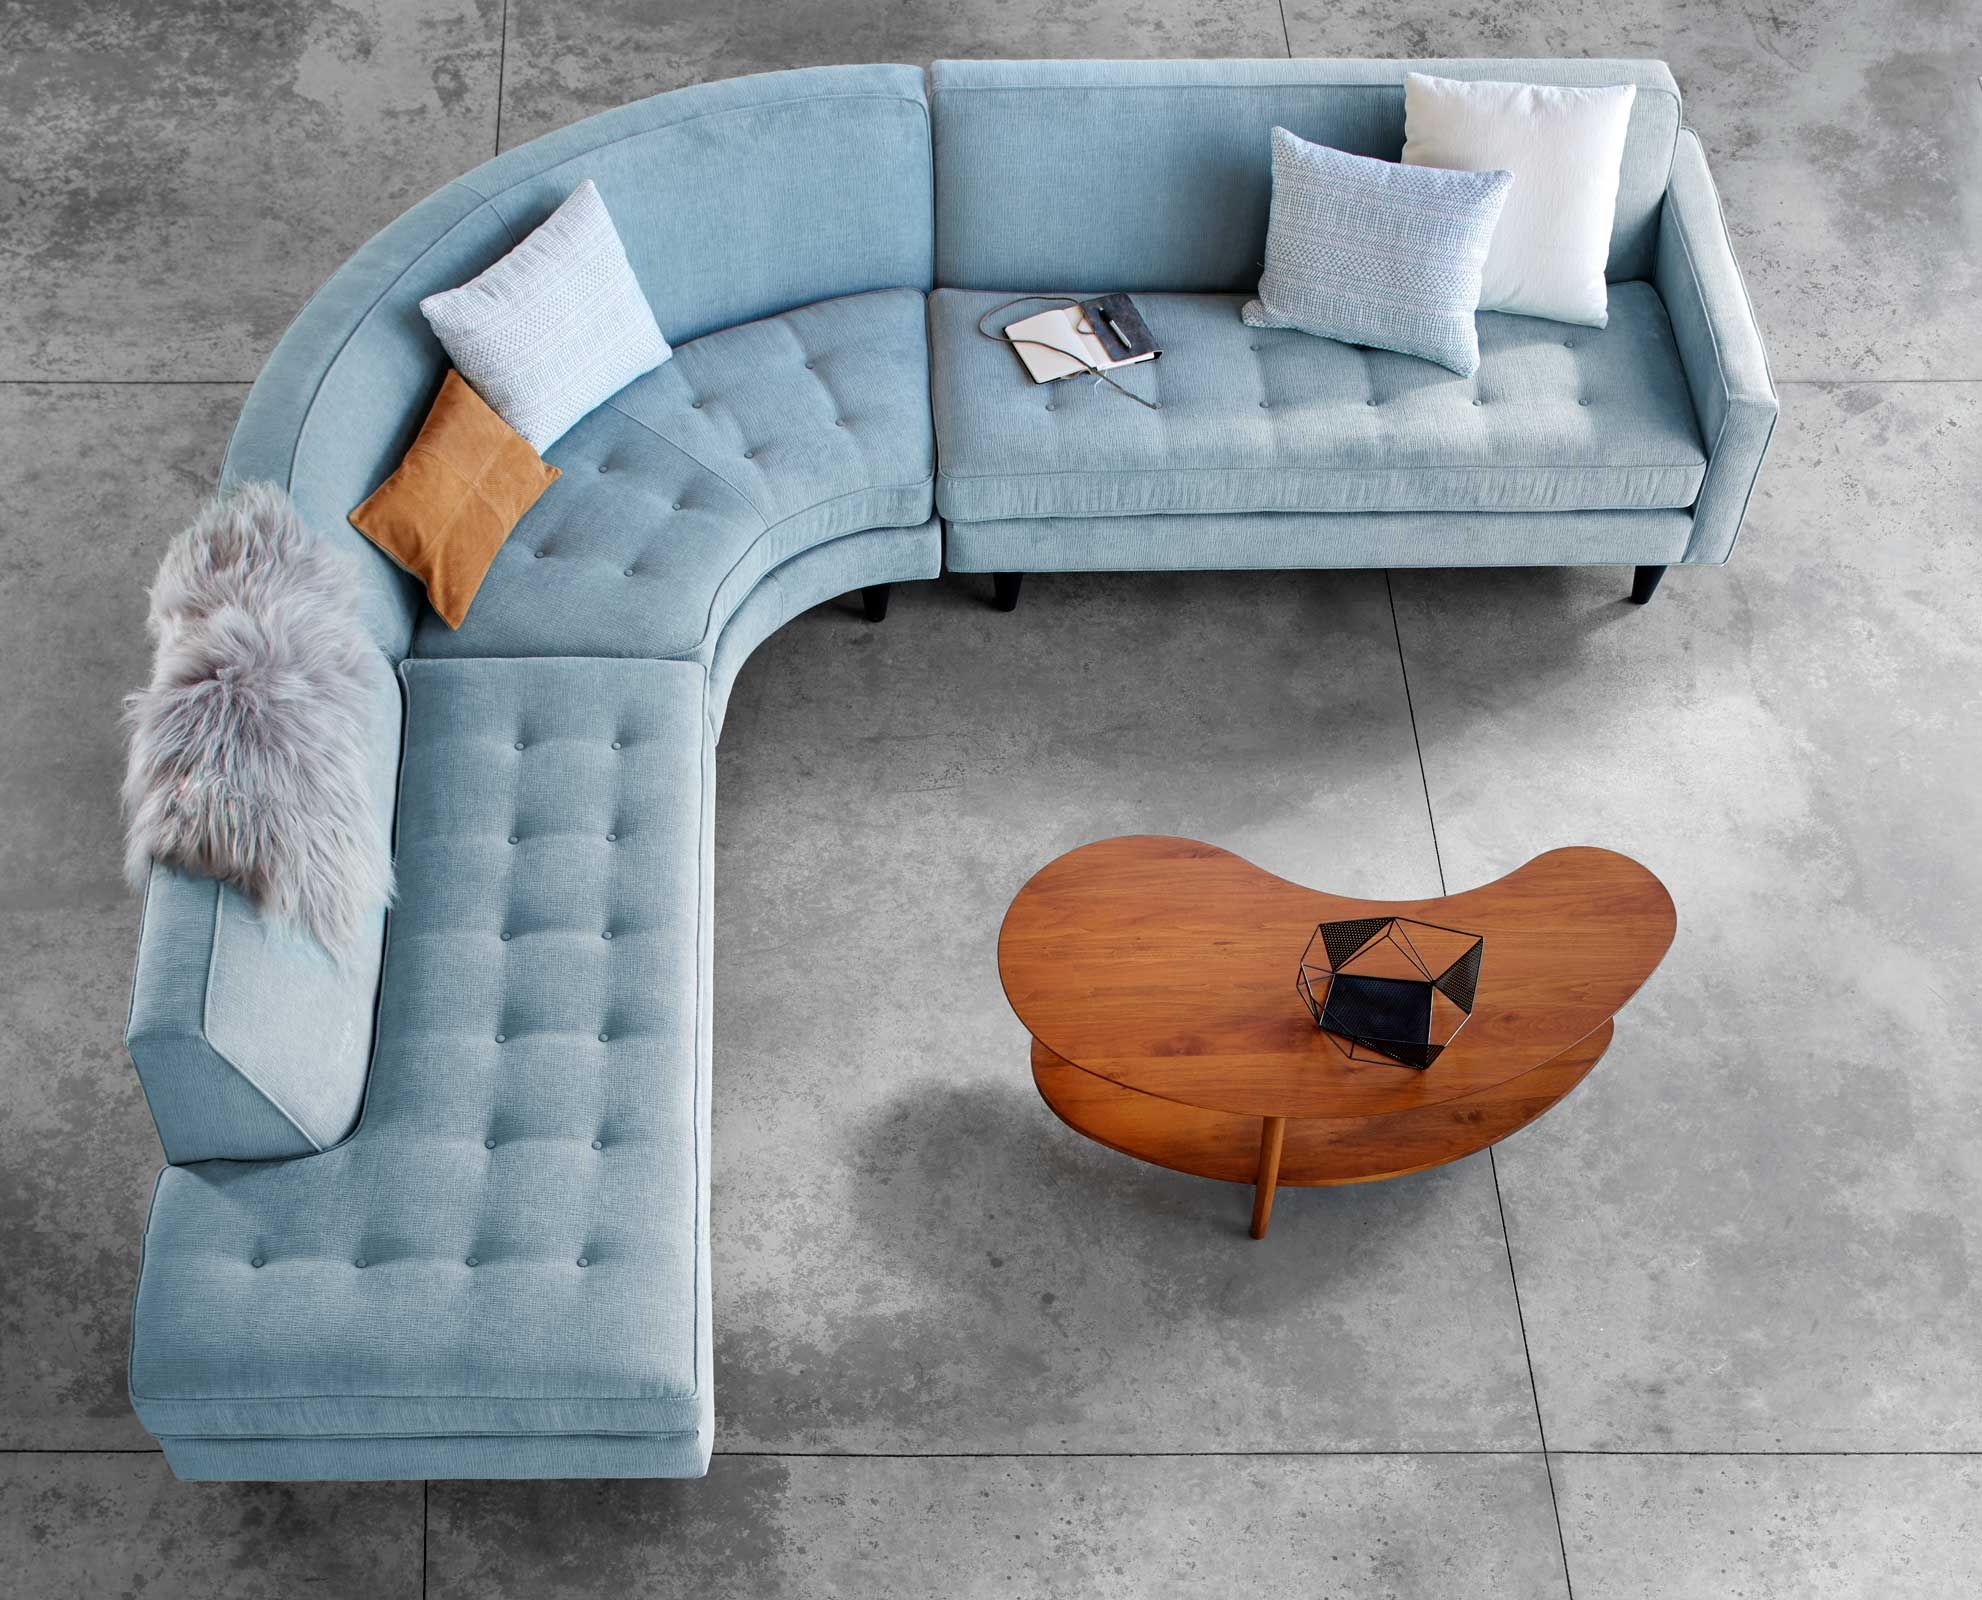 Seats And Sofa Pancho Bank Scandinavian Designs Ingrid Sectional 多位沙发 In 2019 Curved